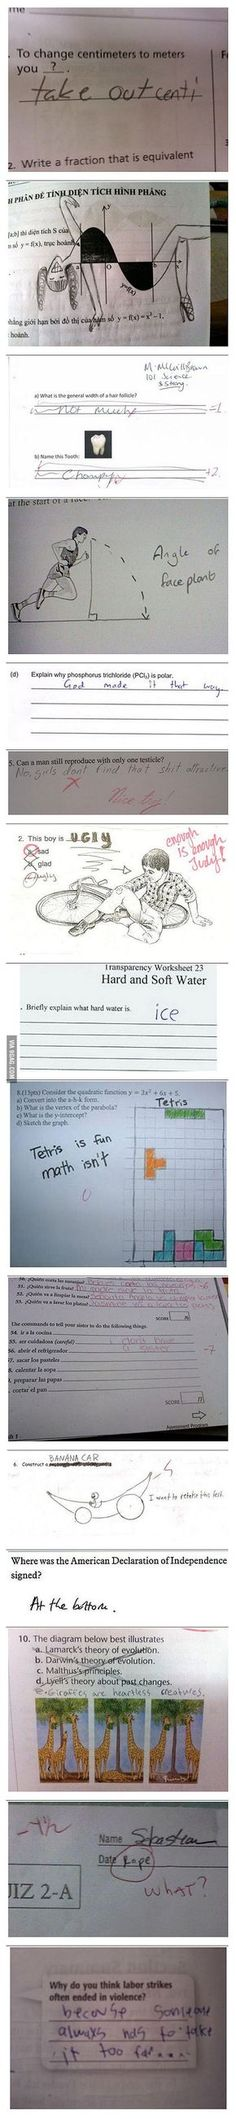 Some funny exam answers!